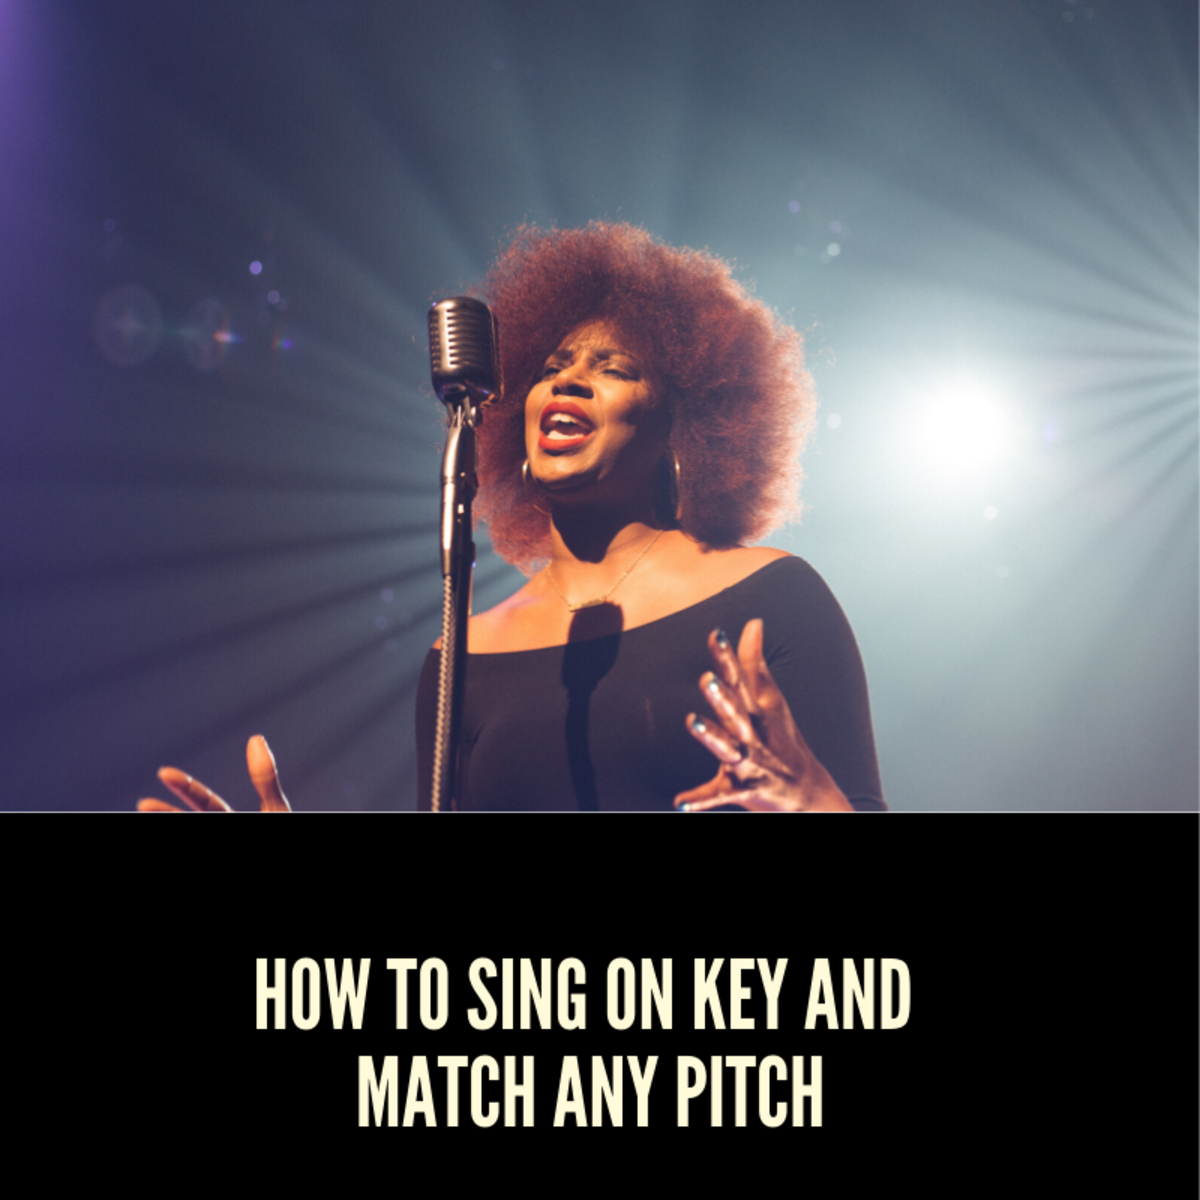 How to Sing on Key and Match Any Pitch Using Proper Breath Support